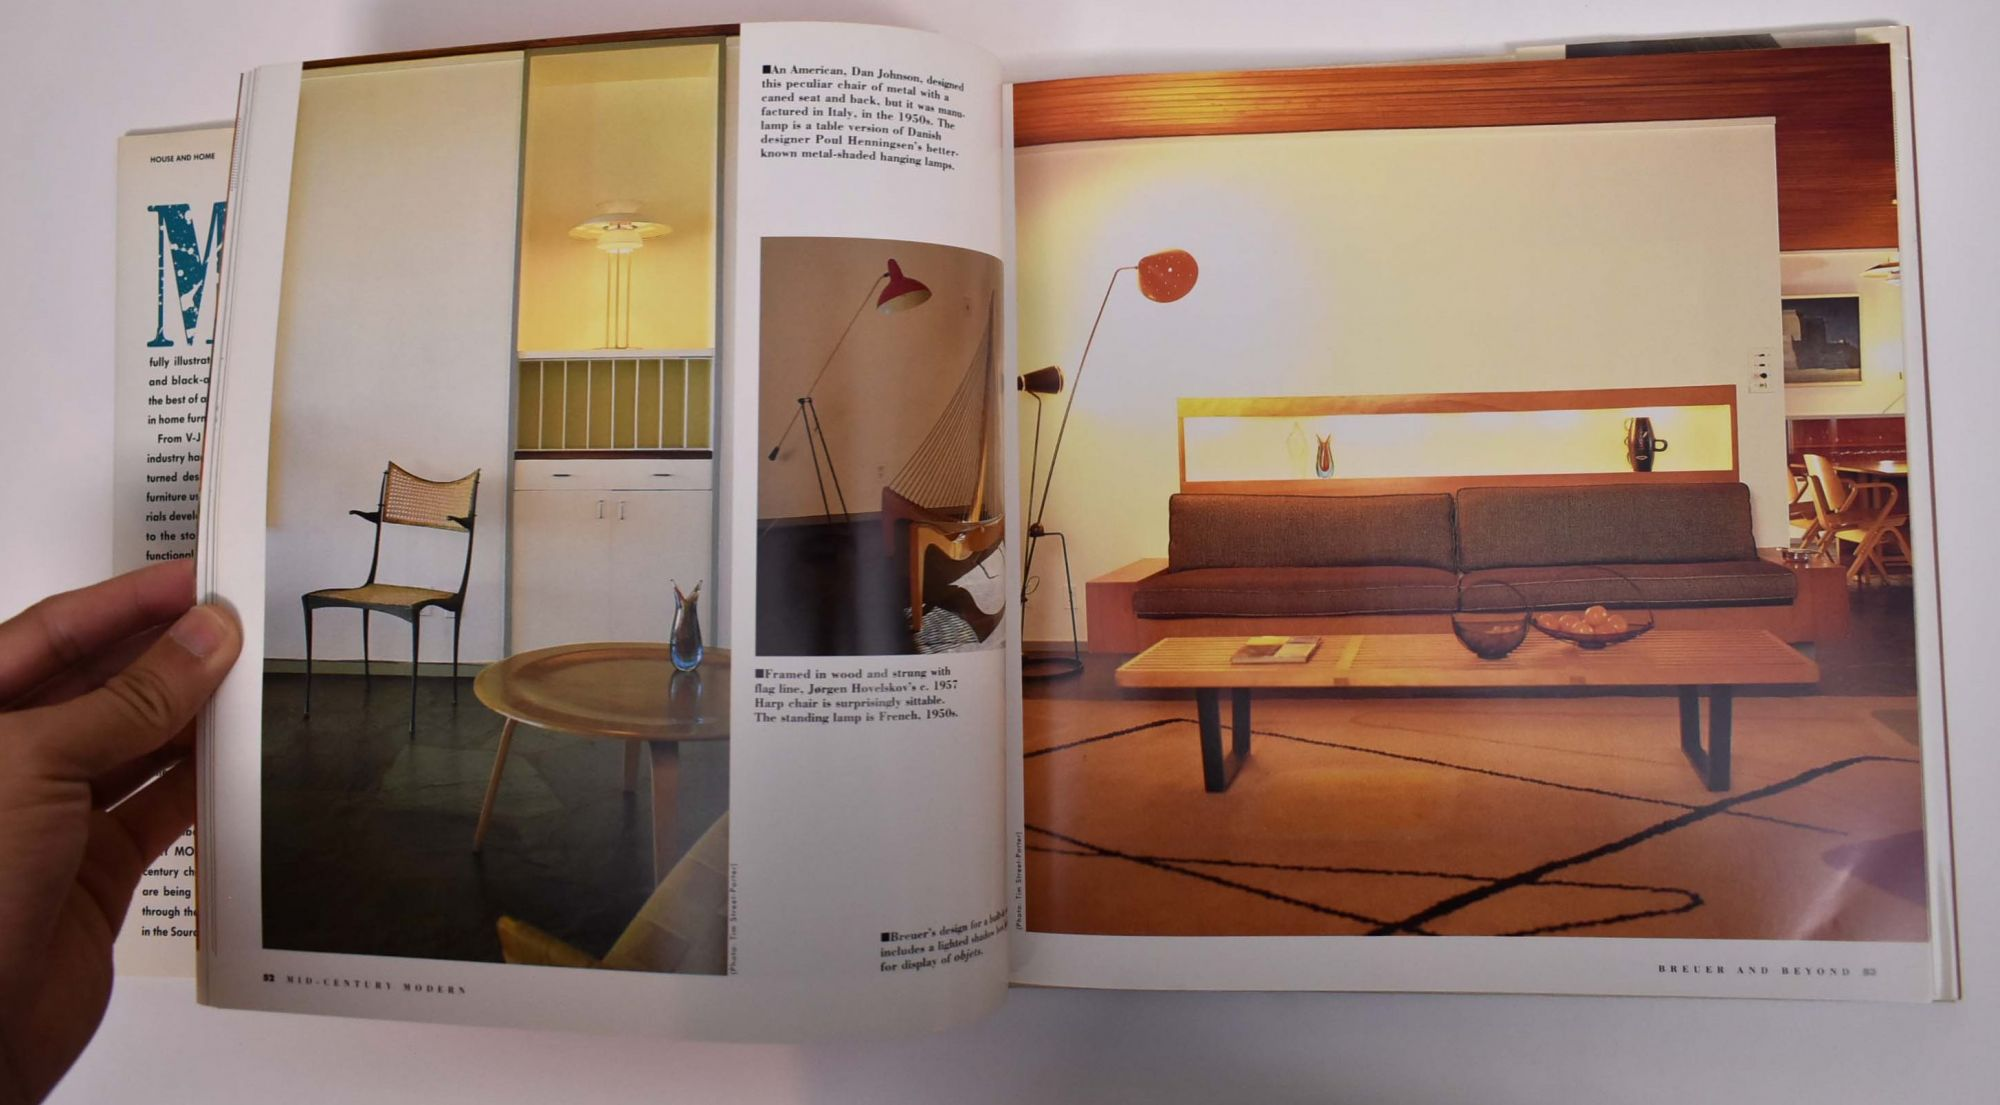 Mid Century Modern Furniture Of The 1950s Cara Greenberg